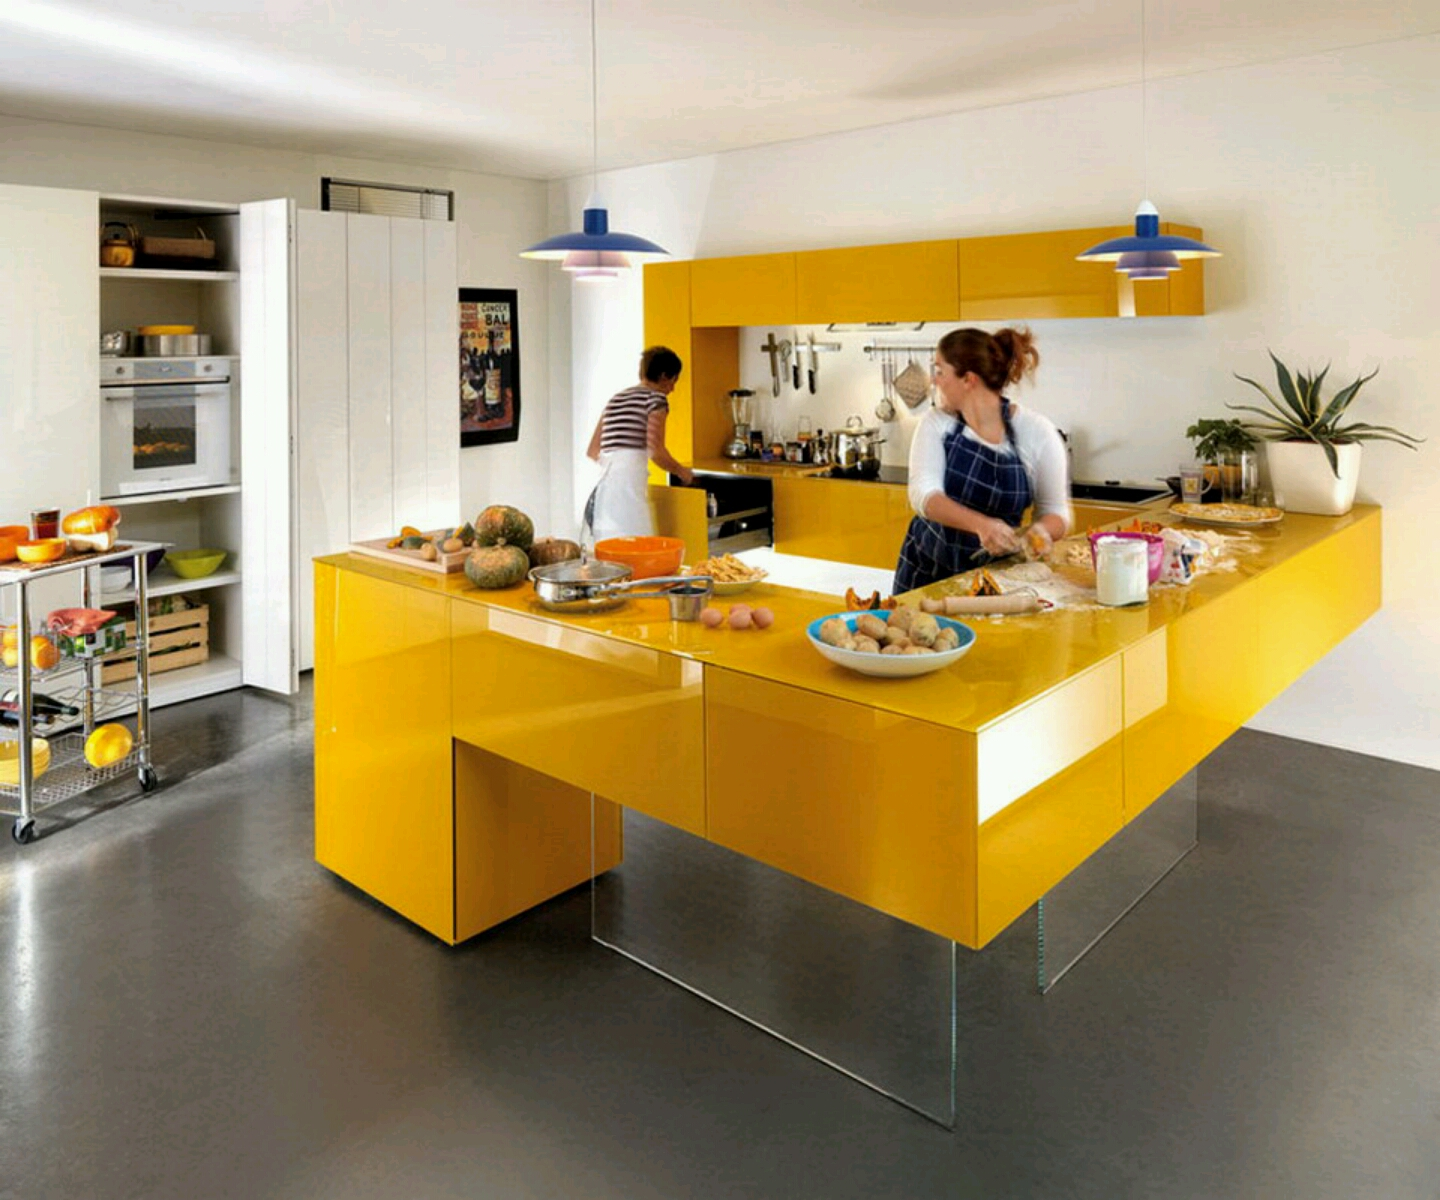 Modern kitchen cabinets designs ideas furniture gallery for Kitchen design and layout ideas